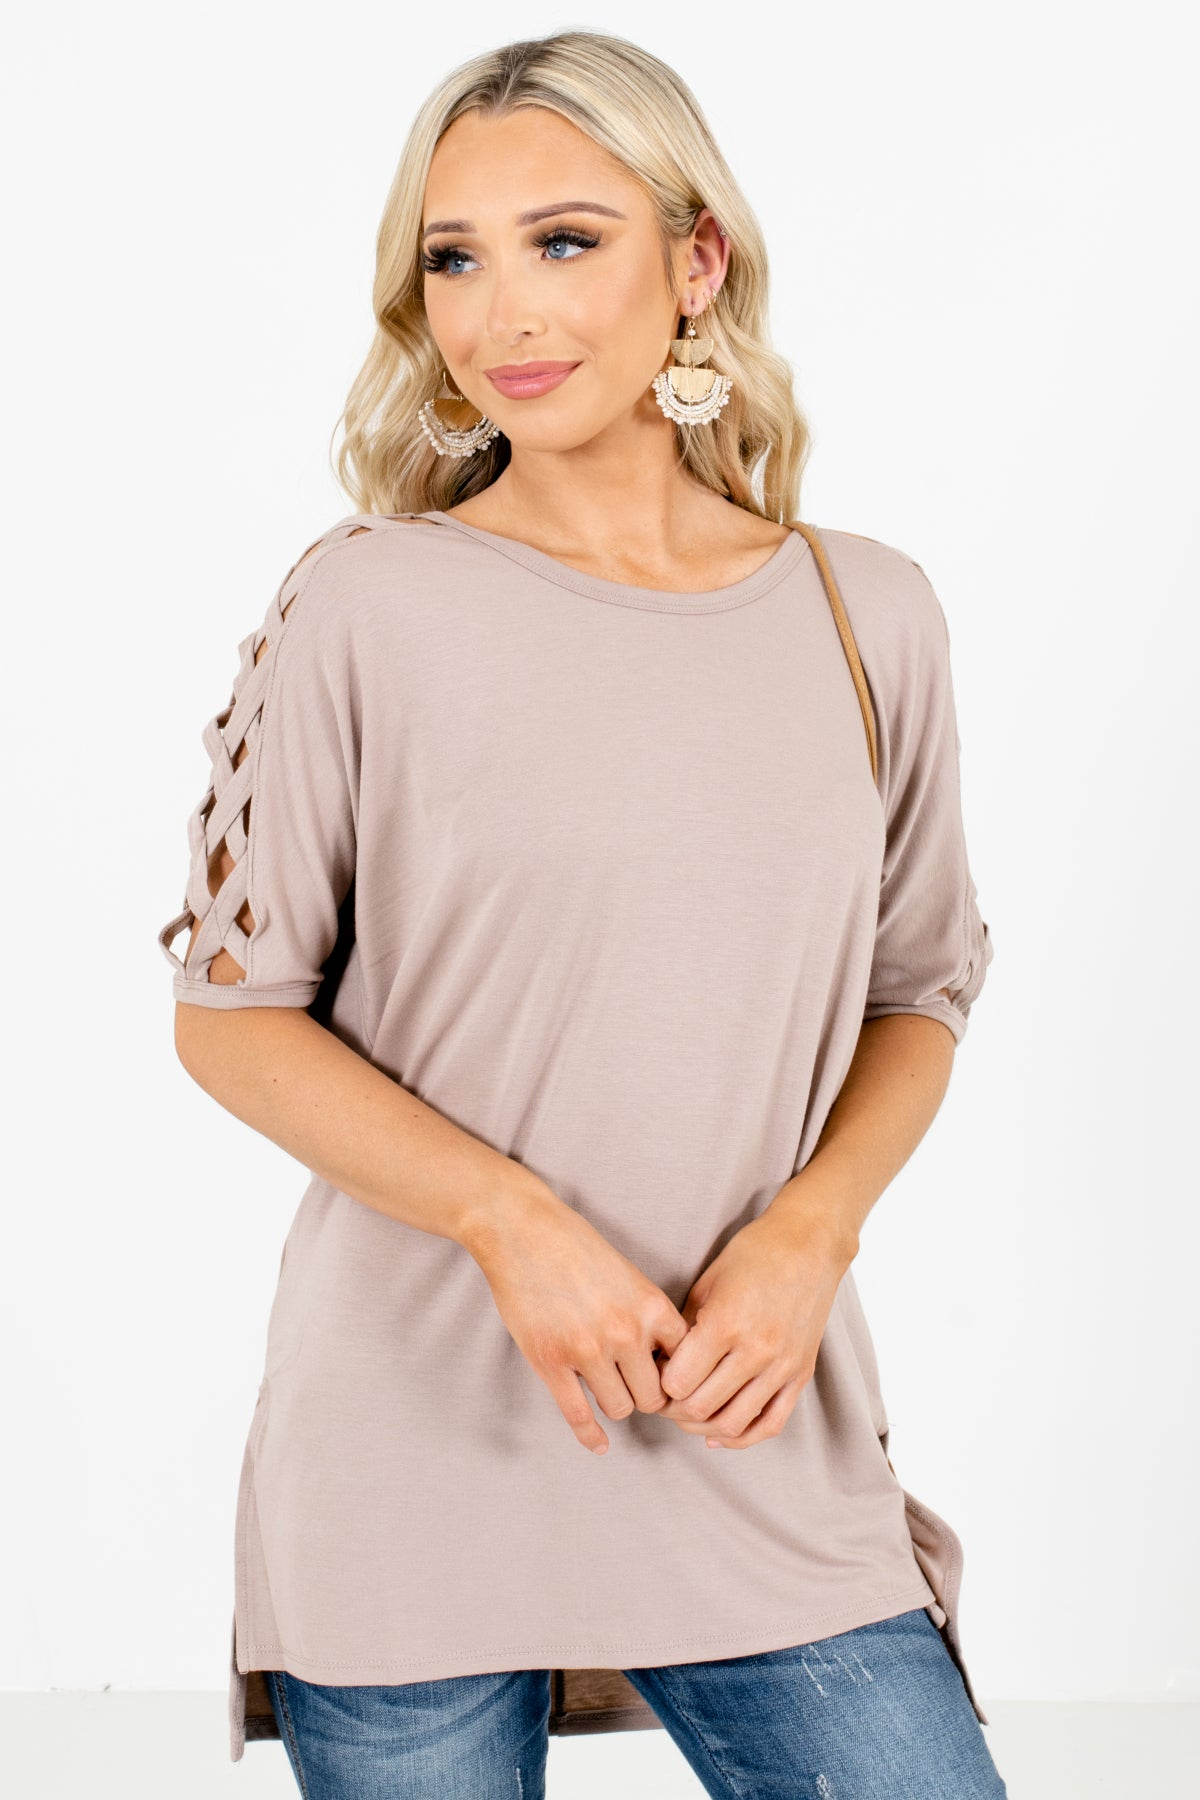 Brown Criss-Cross Detailed Boutique Tops for Women